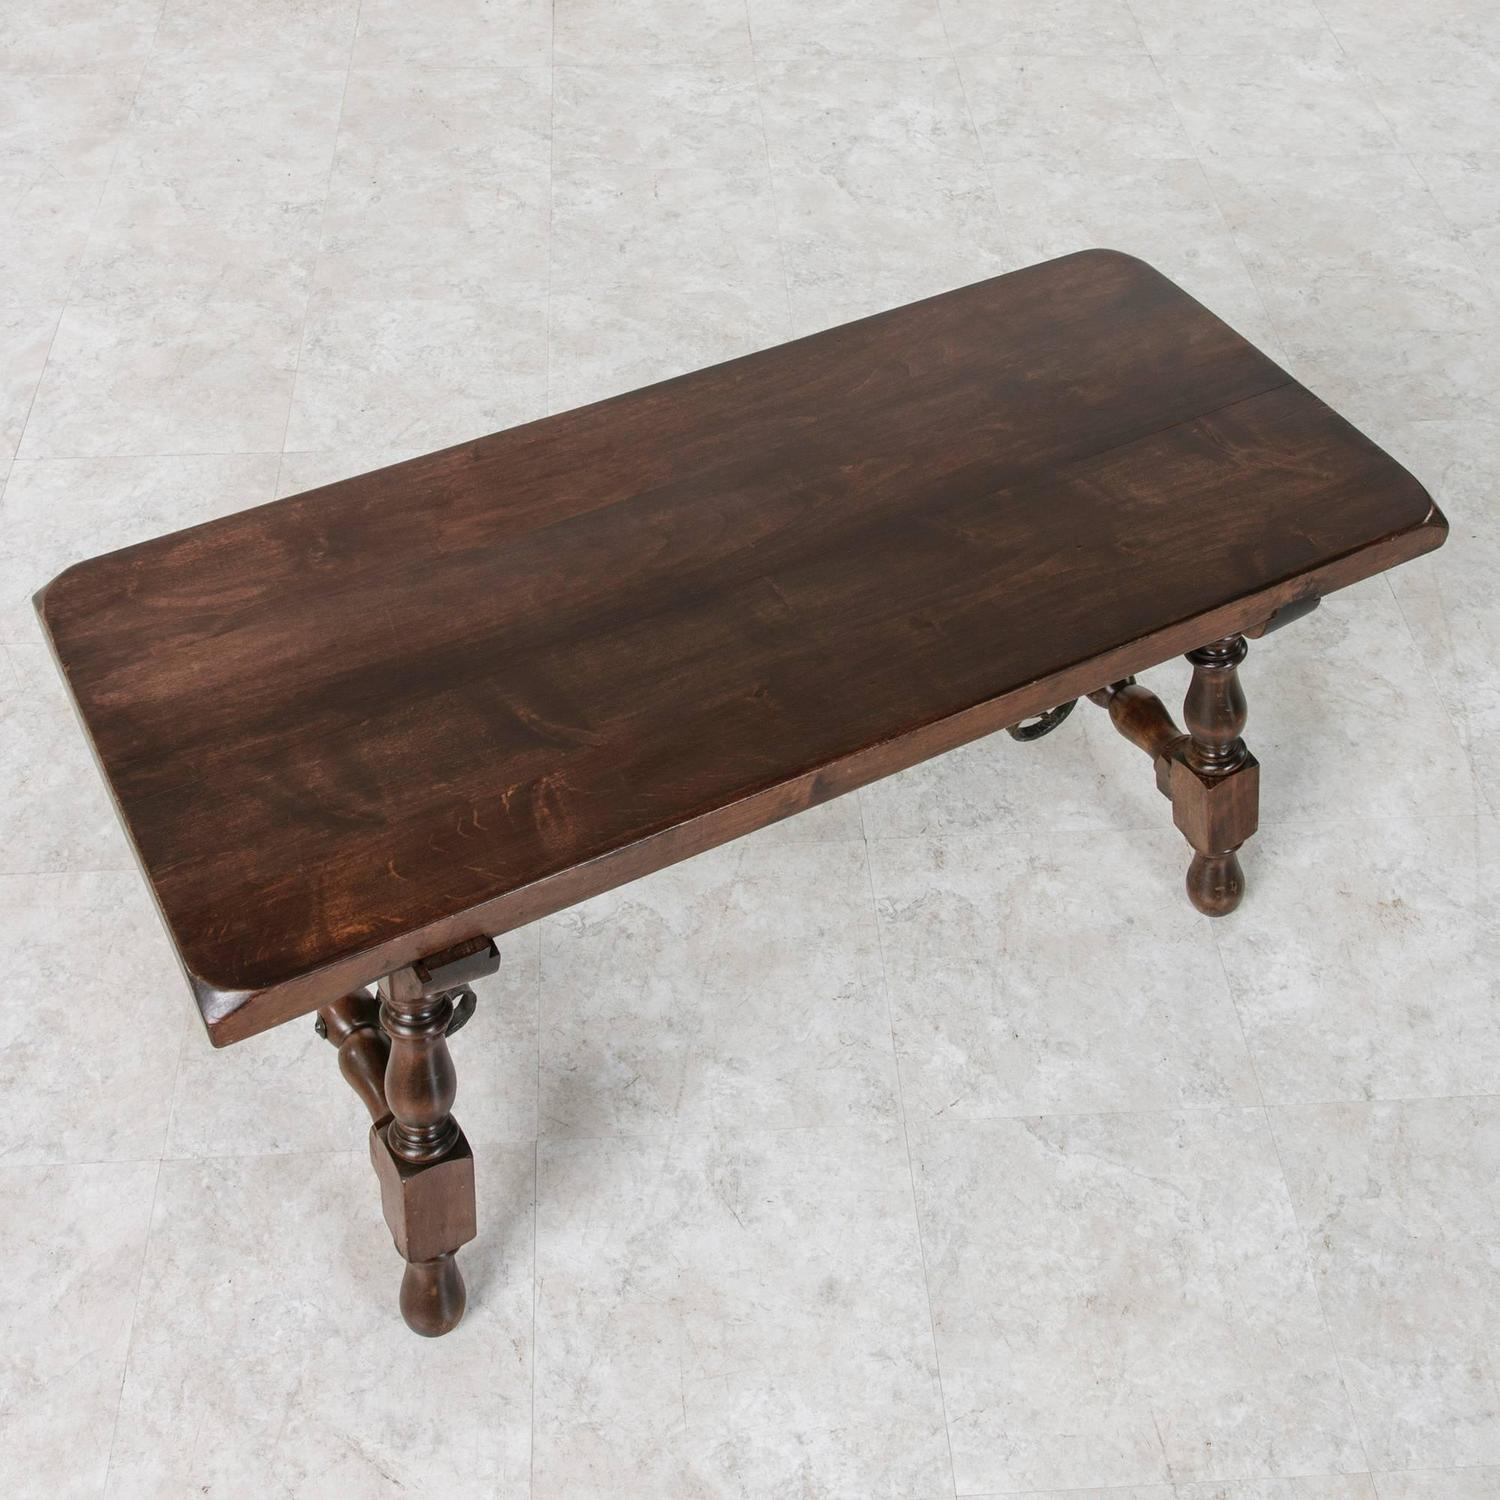 Vintage Spanish Style Glass Top Turned Wood Coffee Table Chairish